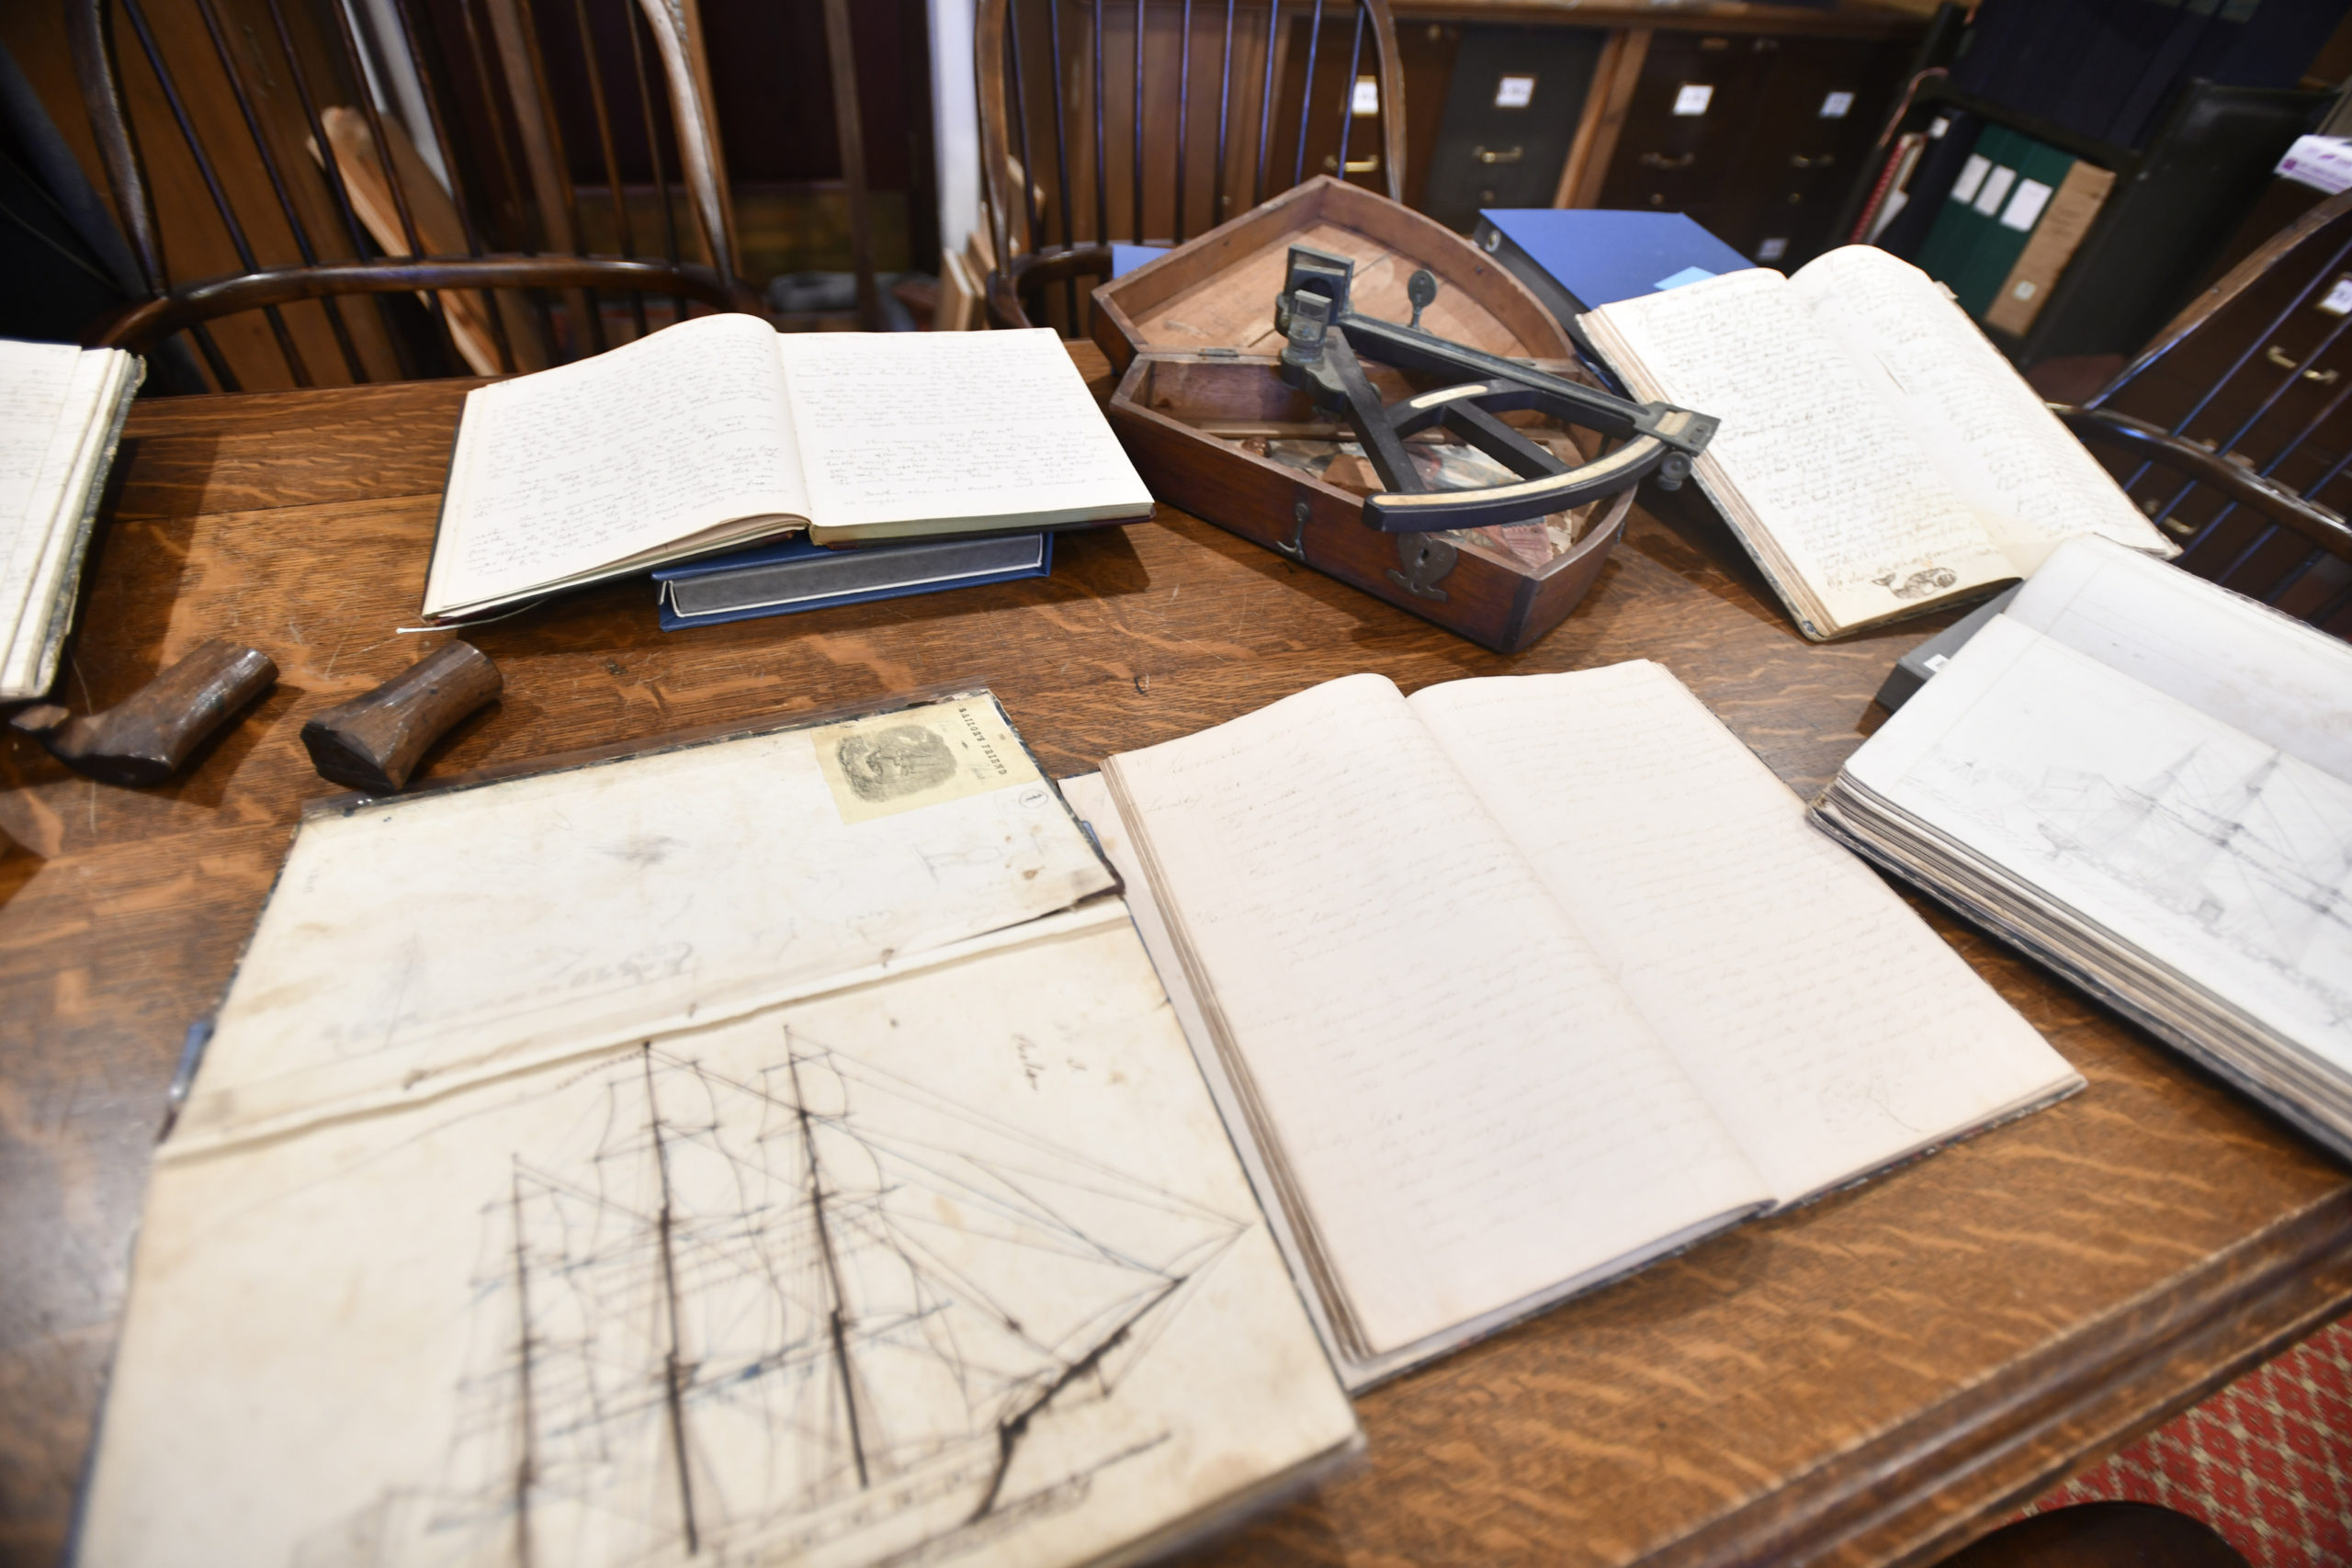 Some of the whaling logs and items from the East Hampton Library's Long Island Collection, including a sextant and carved whale stamps.  DANA SHAW